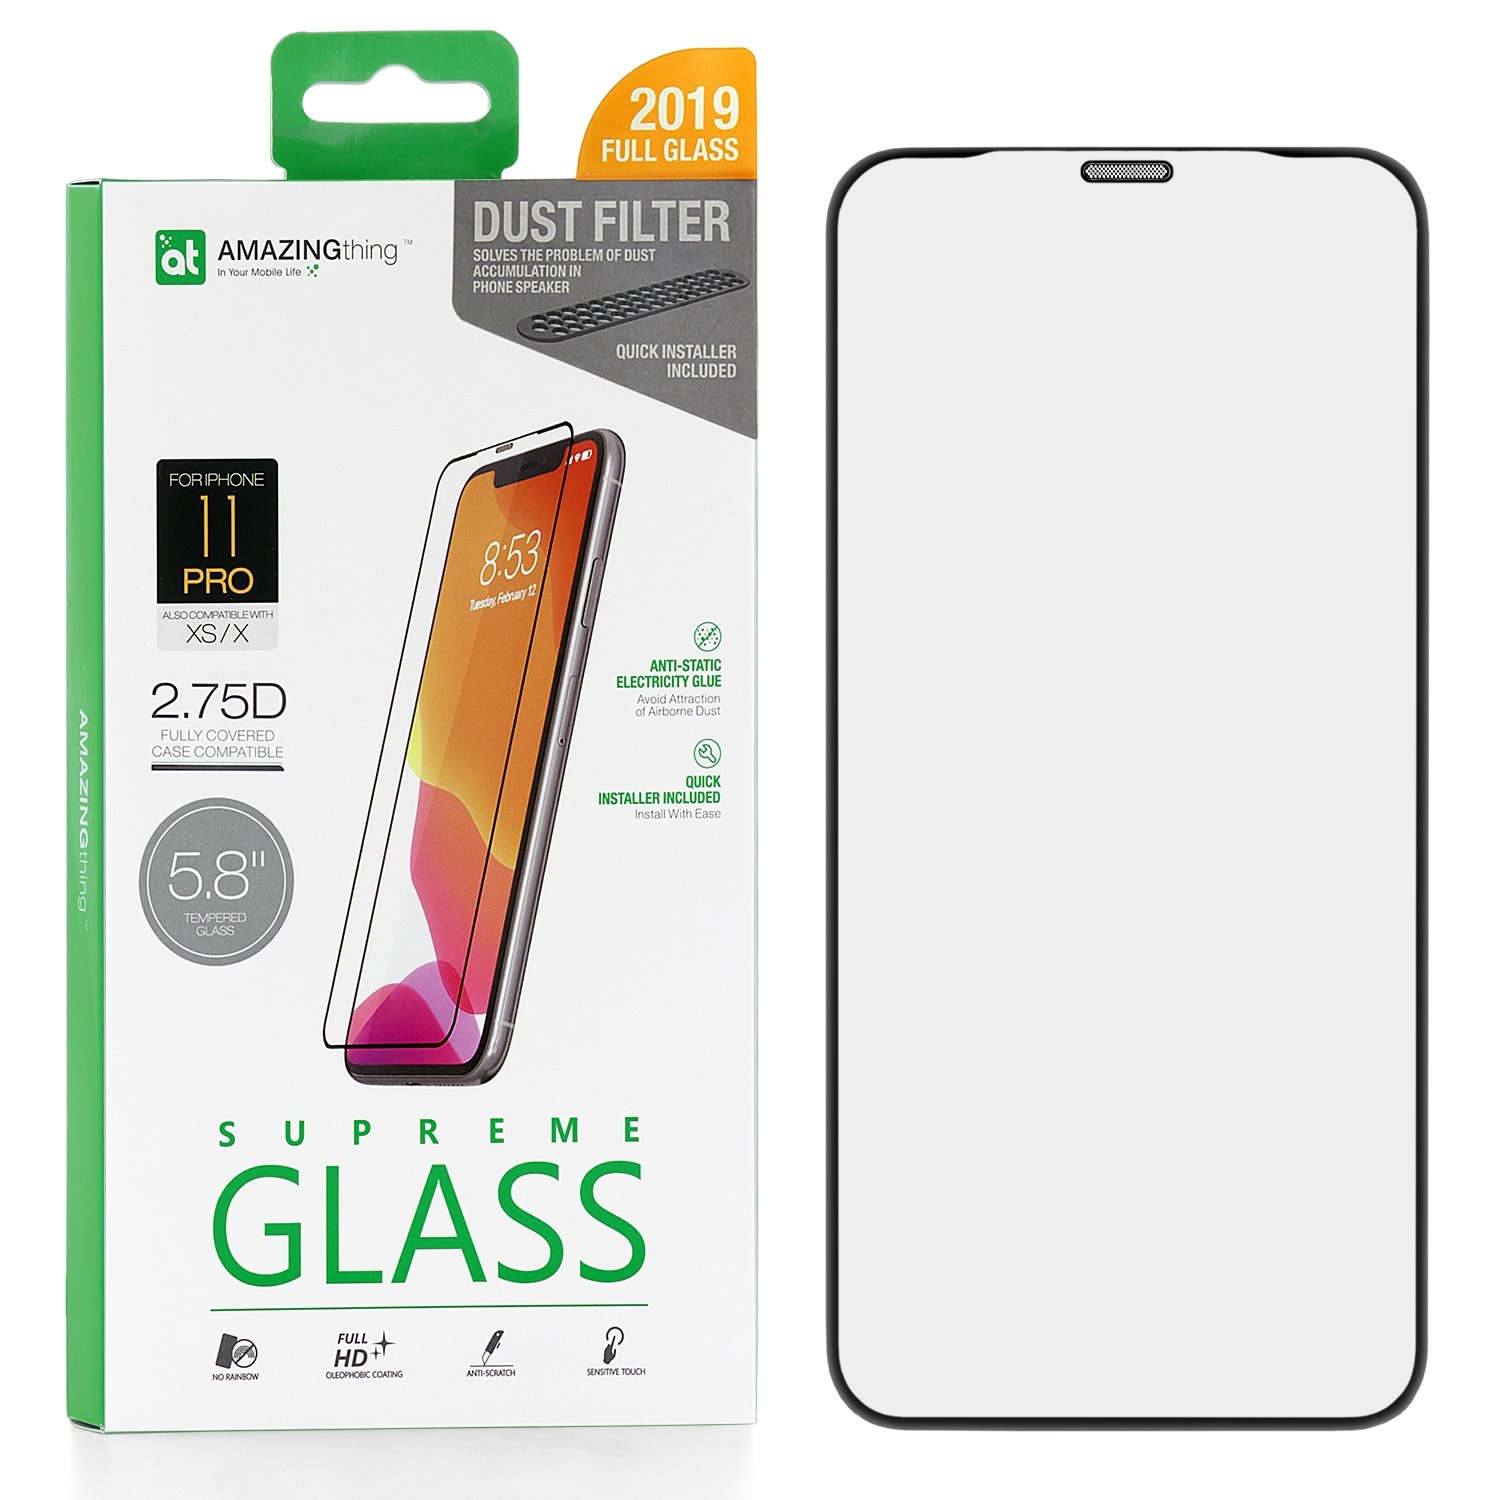 Защитное стекло AMAZINGthing SupremeGlass Dust Filter Black 0.3mm для Apple iPhone X